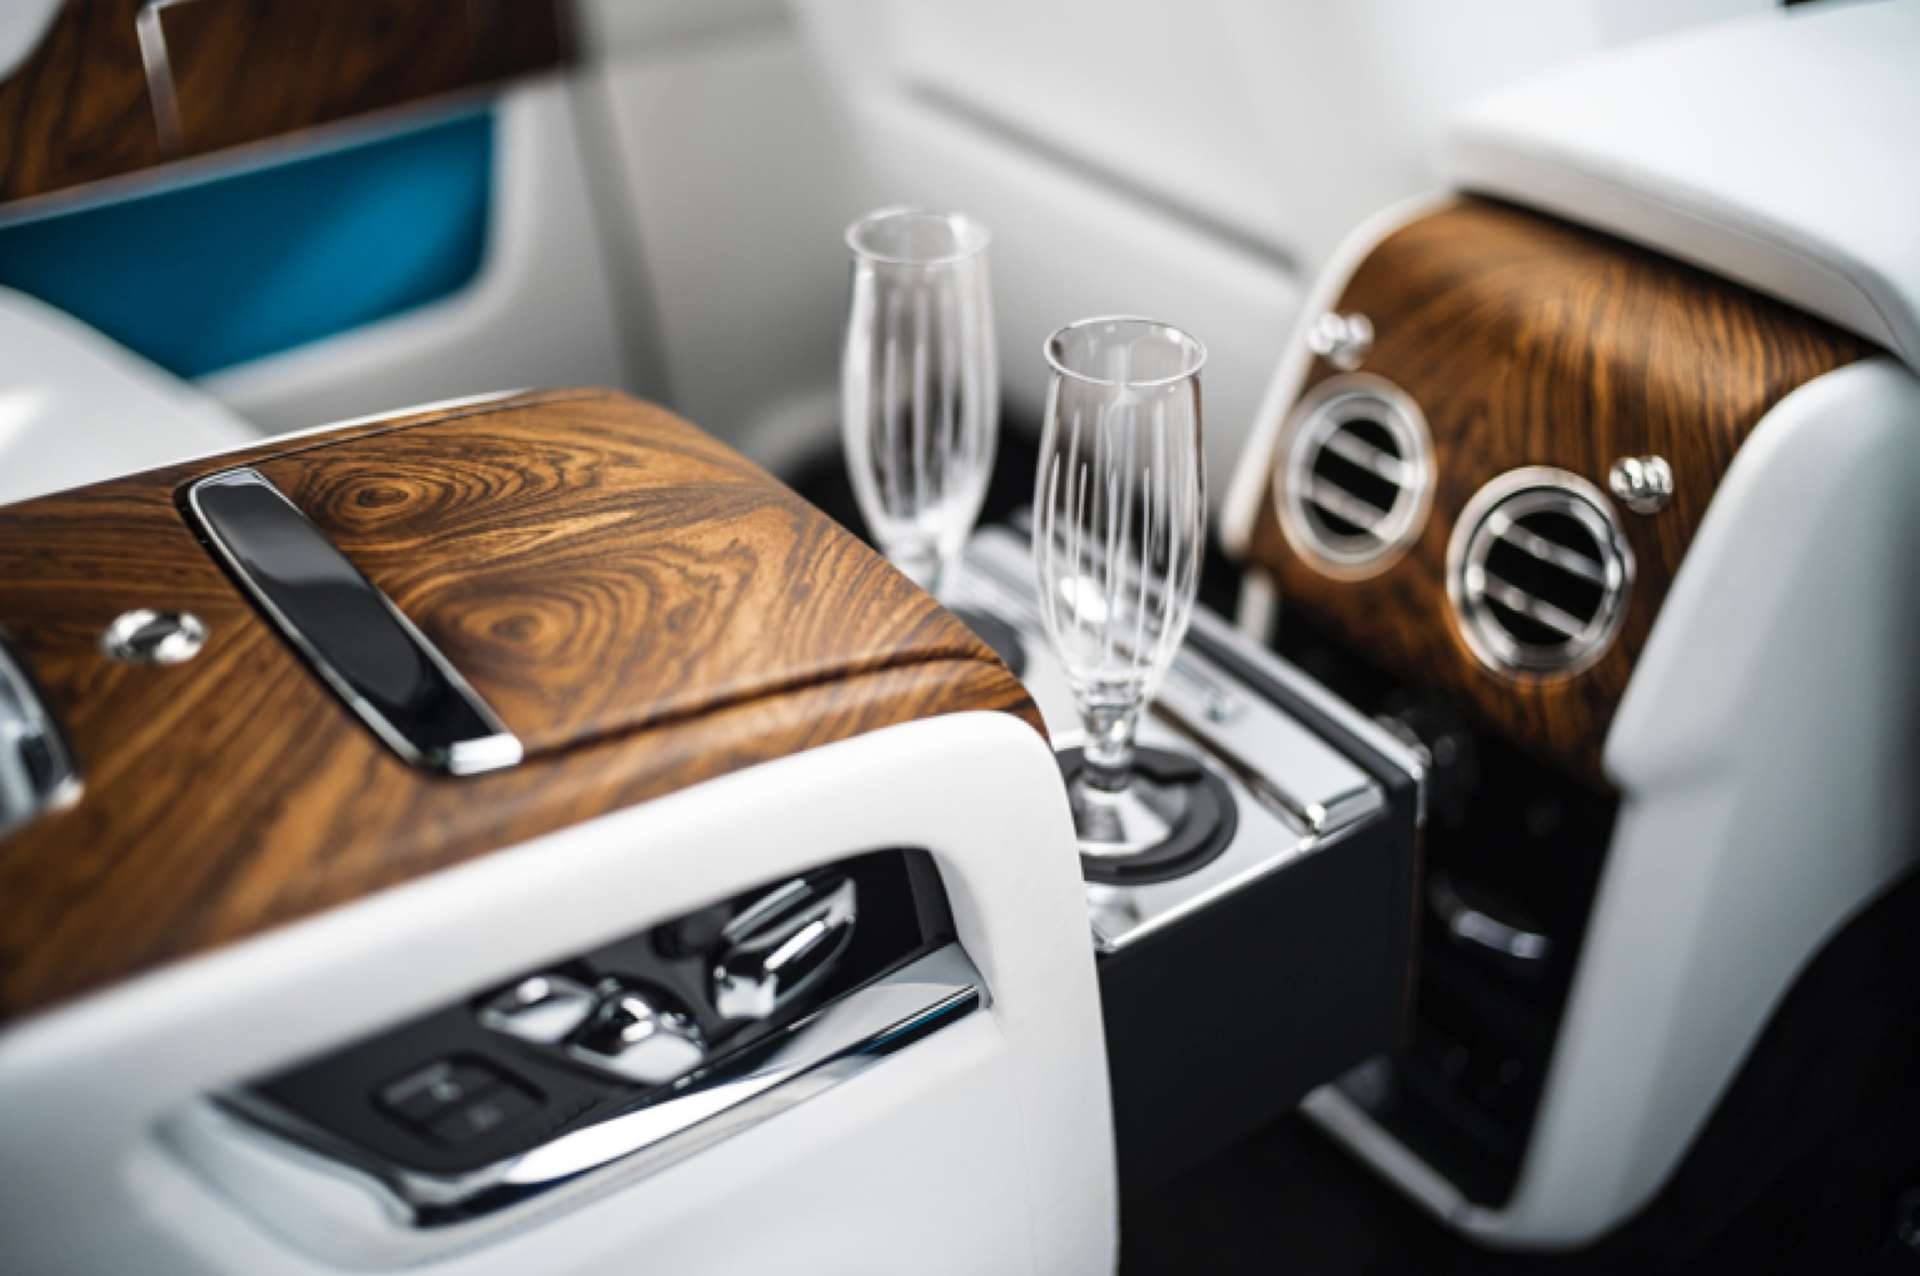 The interior of a Rolls-Royce Cullinan, featuring champagne glasses